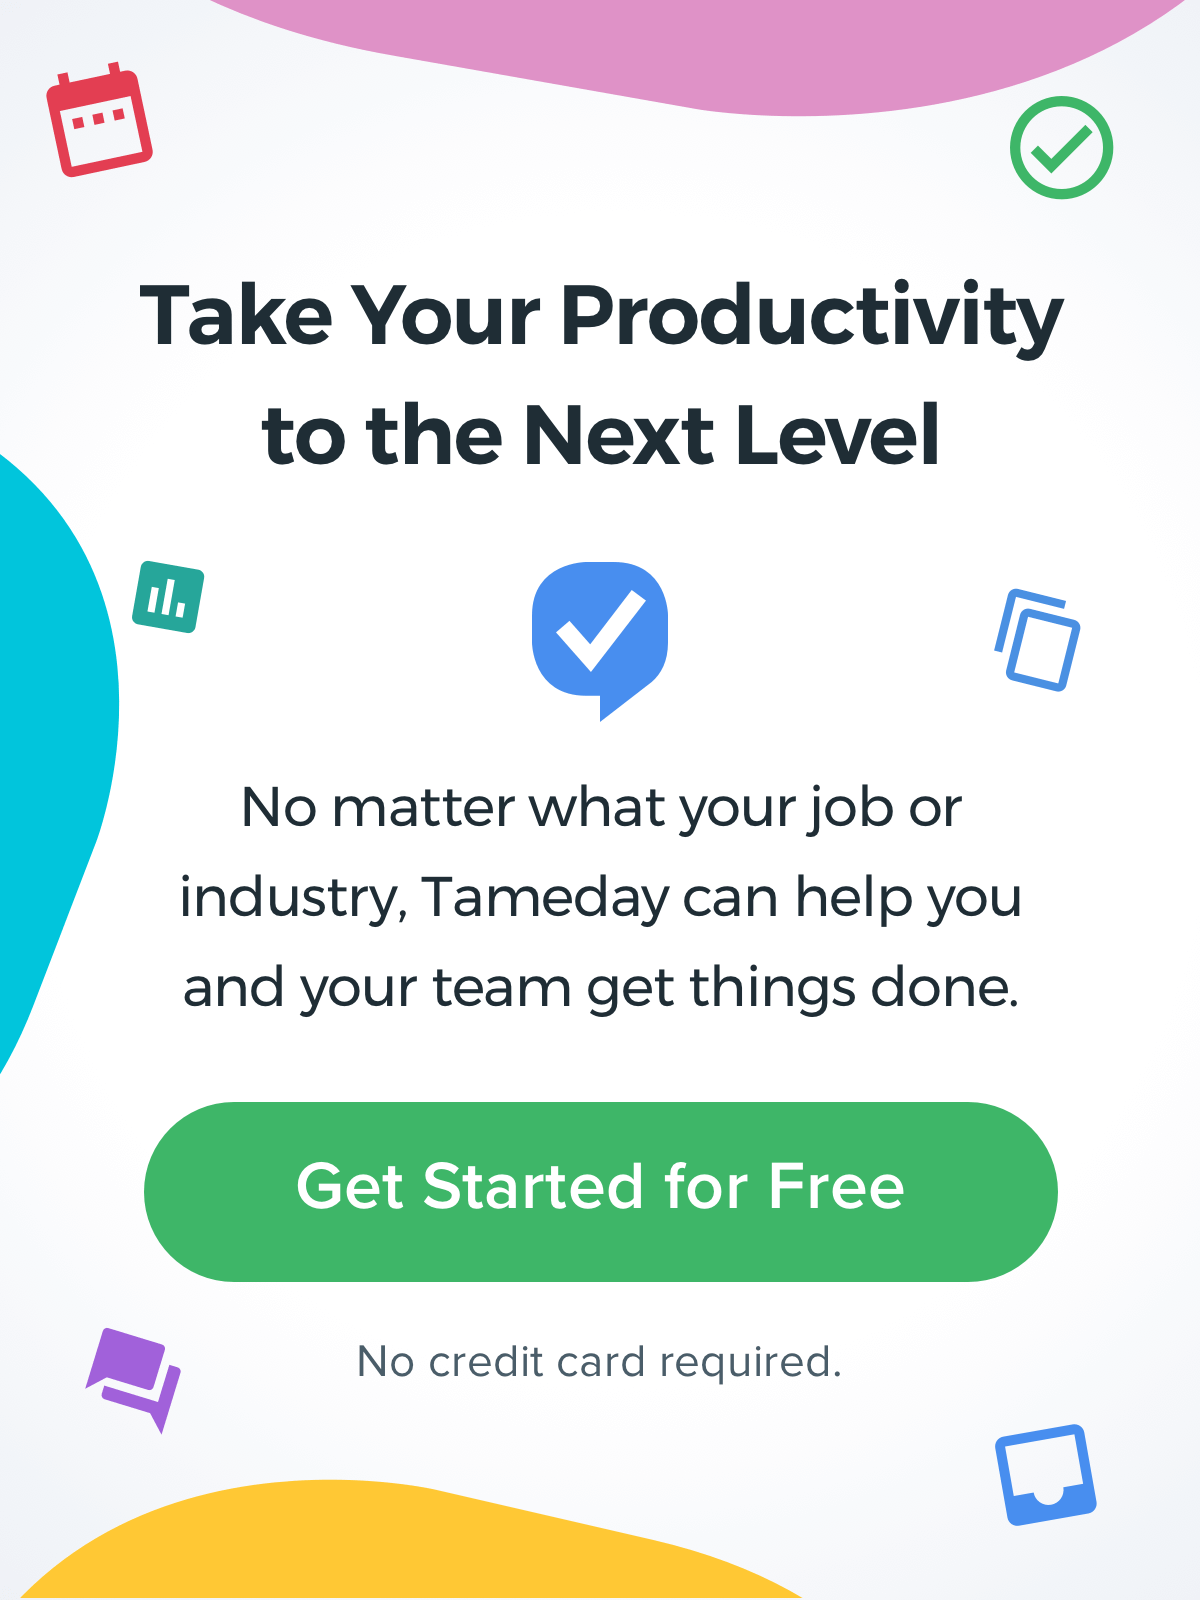 The Best Productivity Podcasts for 2019 - Tameday